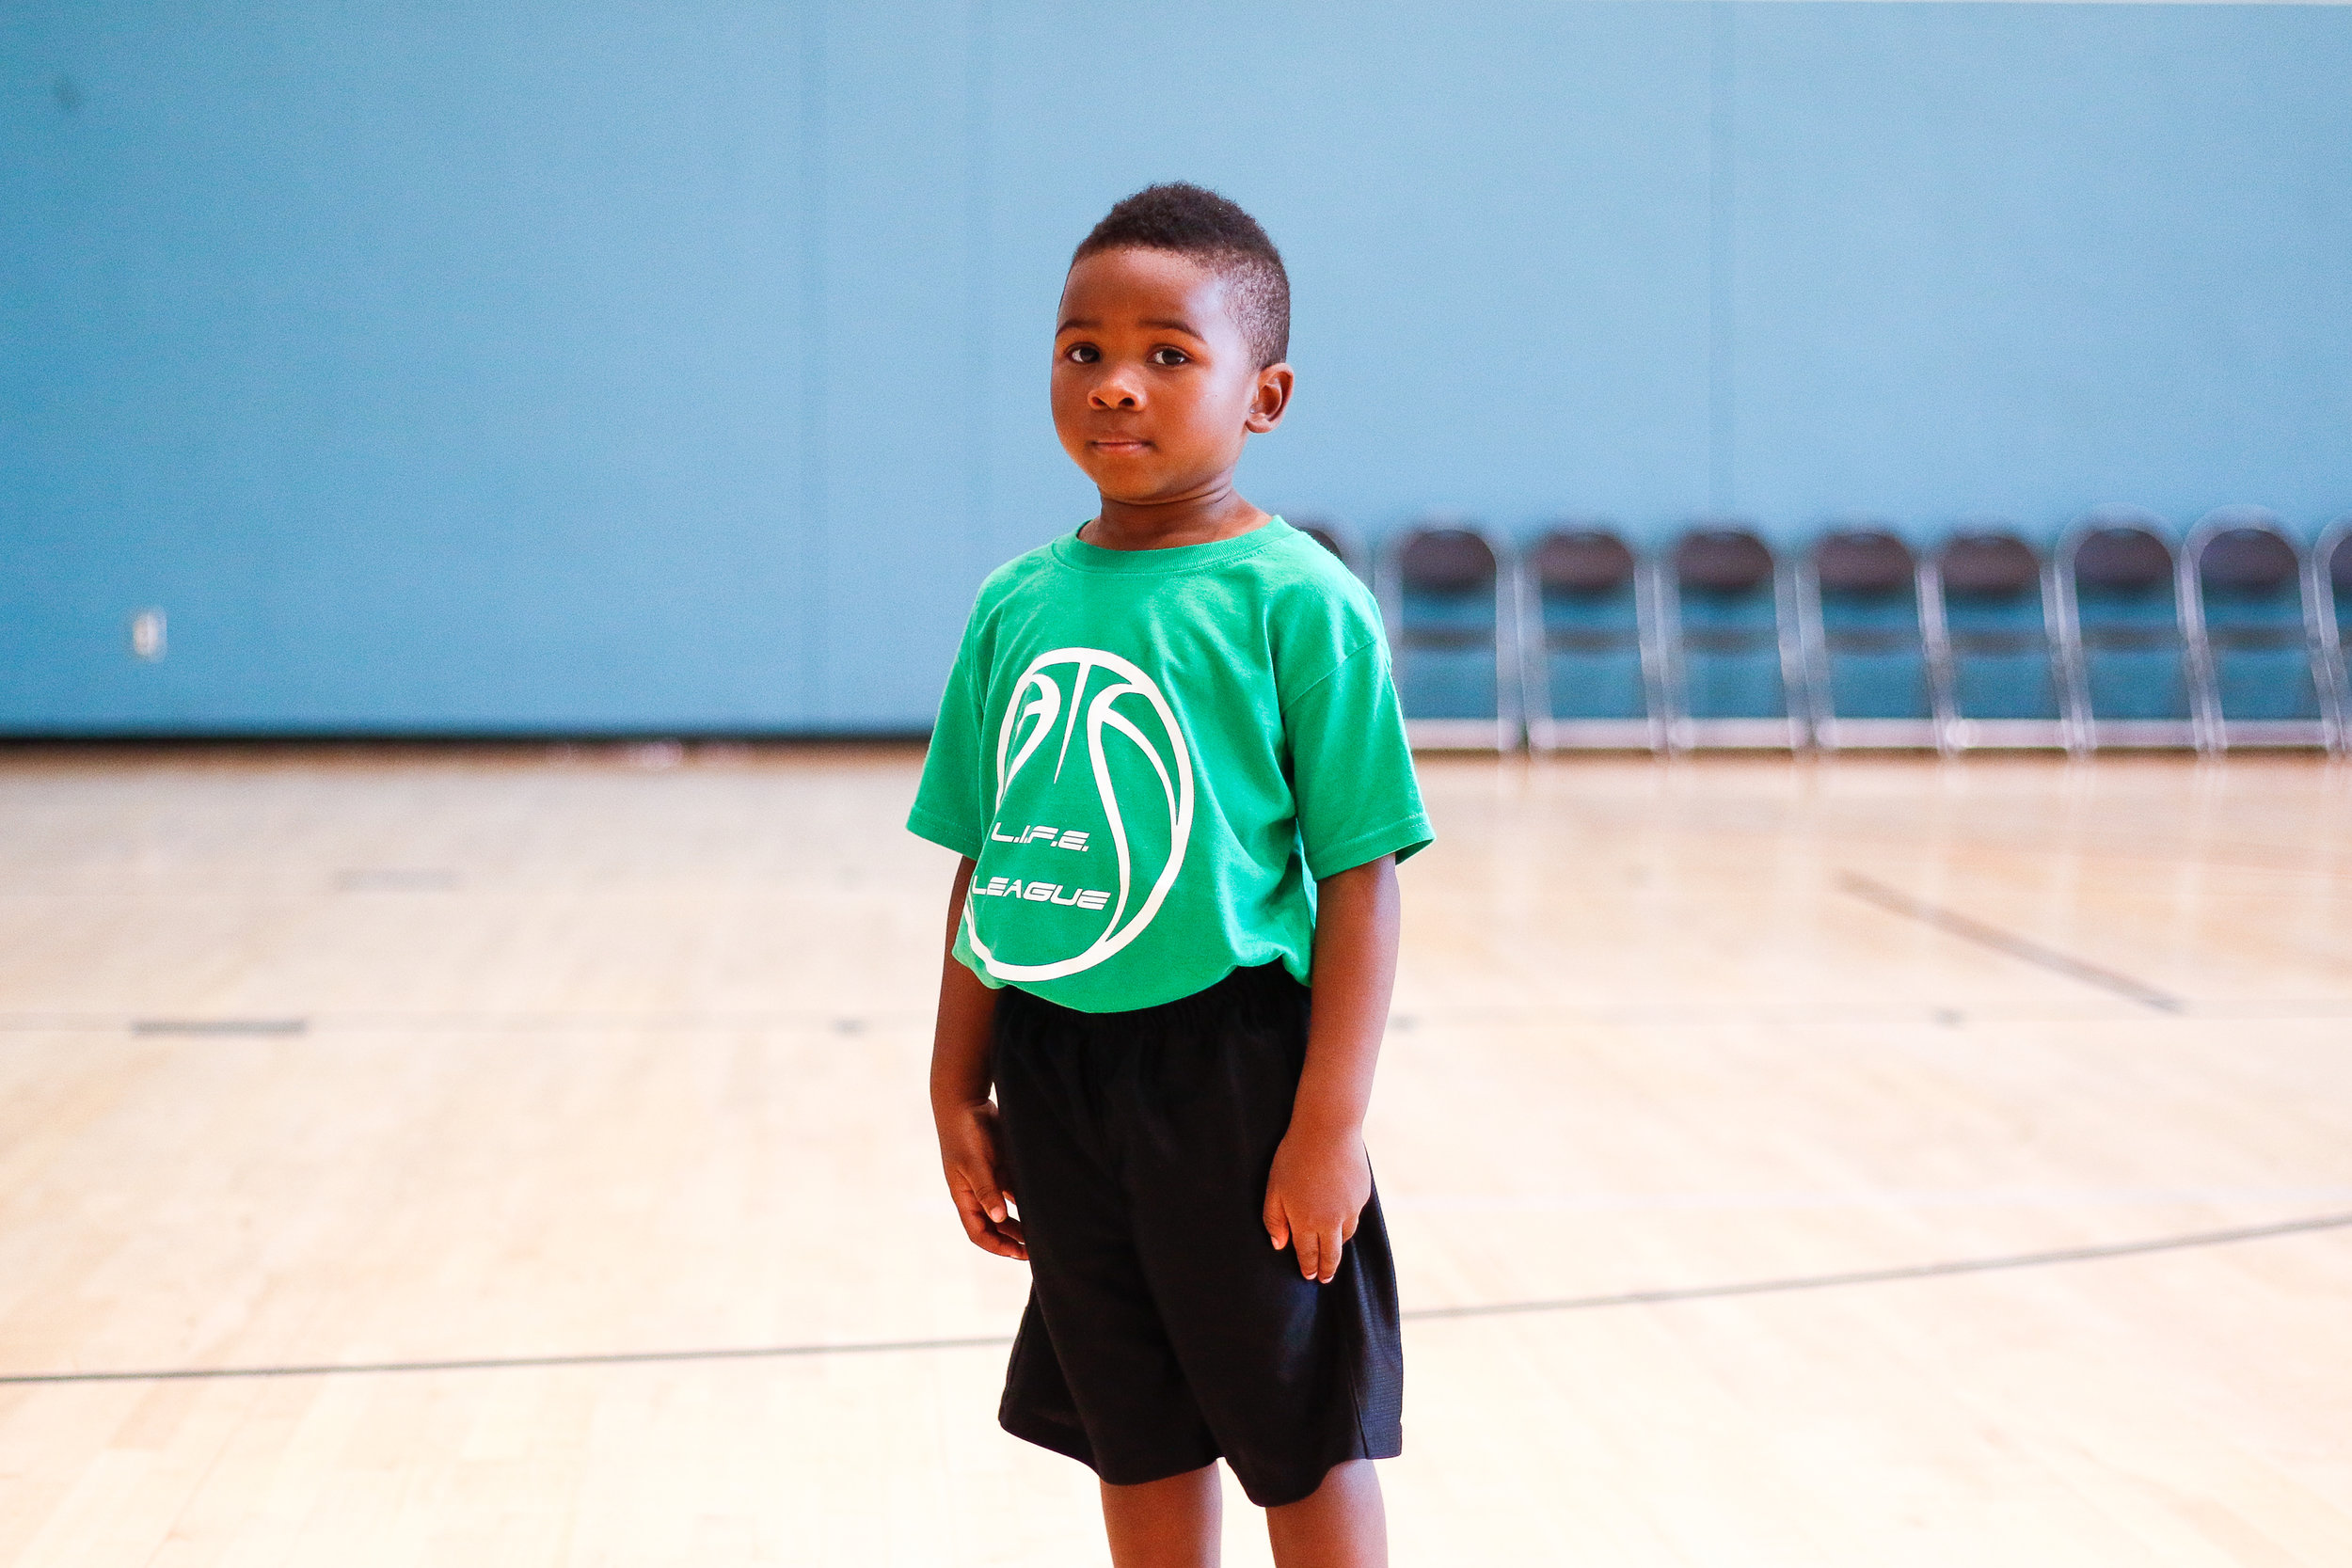 Camden Kendrick, 4, of Warner Robins pauses while crossing the gym at a Life League Basketball Camp in Ramsey Student Center on Friday, Jul. 13, 2018. Kendrick was one of 40 kids participating in Life League, a nonprofit that works to help young people develop life skills through athletics. According to his mother, Kendrick is reluctant to call the Lakers his favorite basketball team, but hopes to be Lebron James when he grows up.